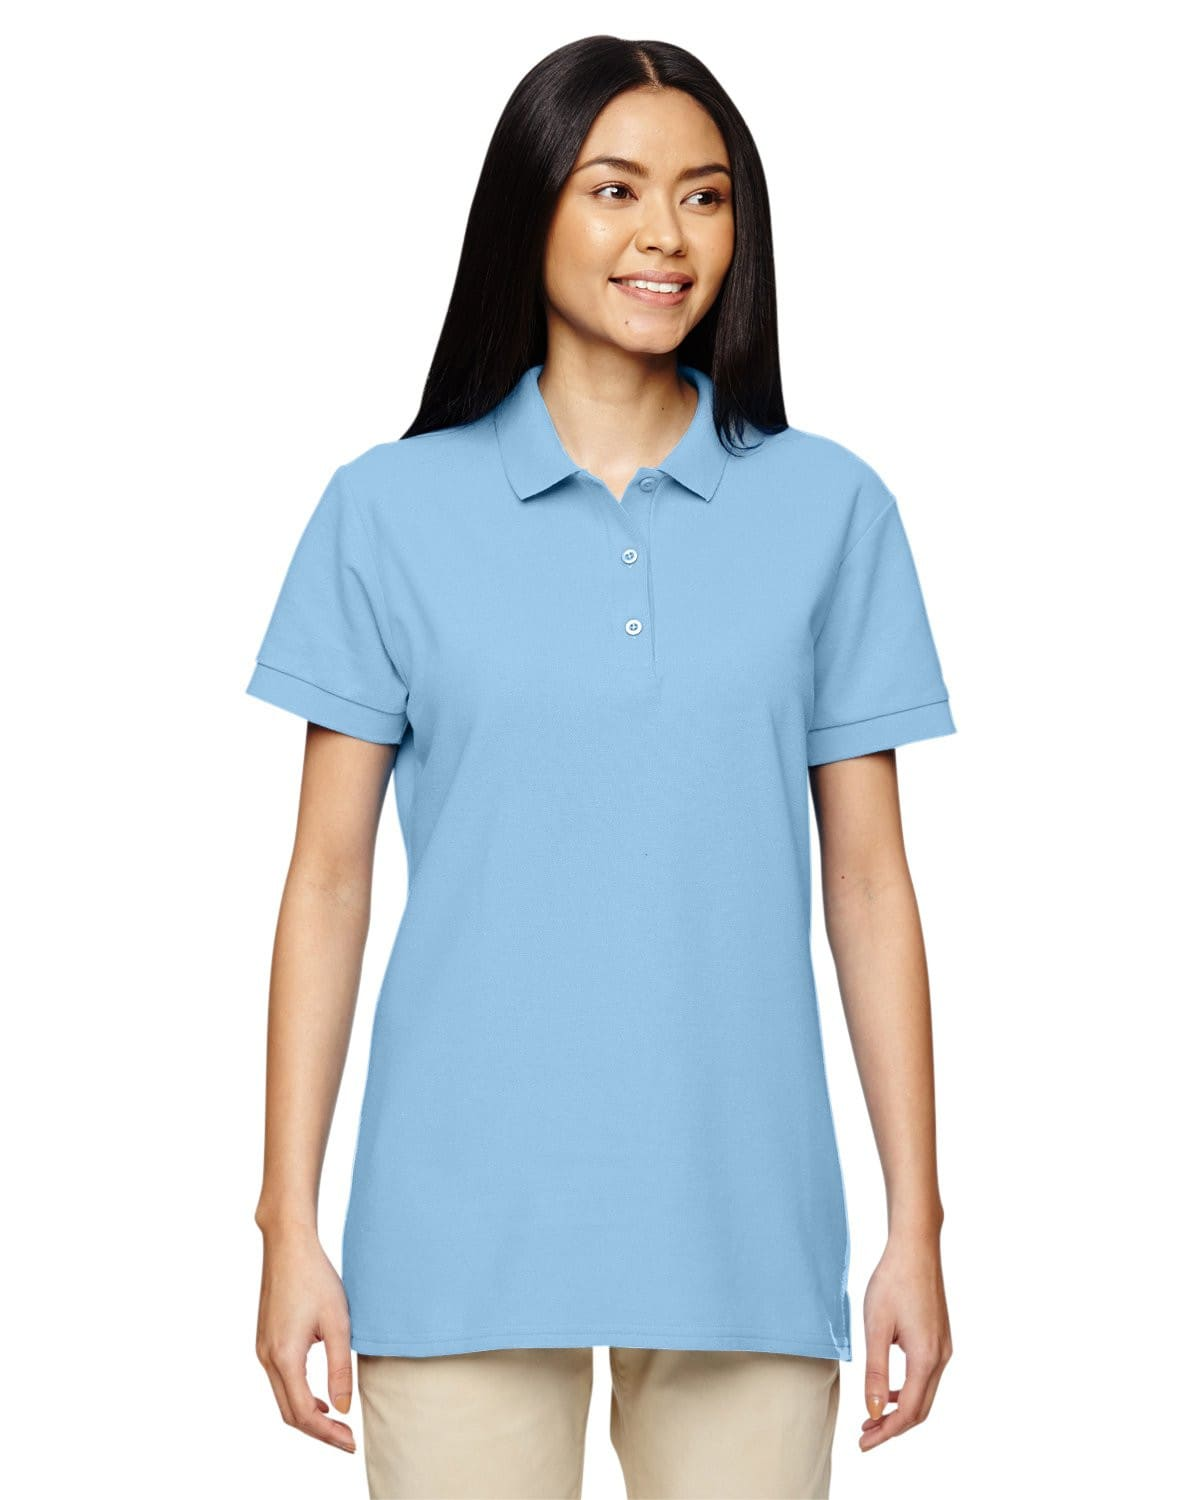 g828l-ladies-premium-cotton-ladies-6-6oz-double-piqu-polo-Small-BLACK-Oasispromos